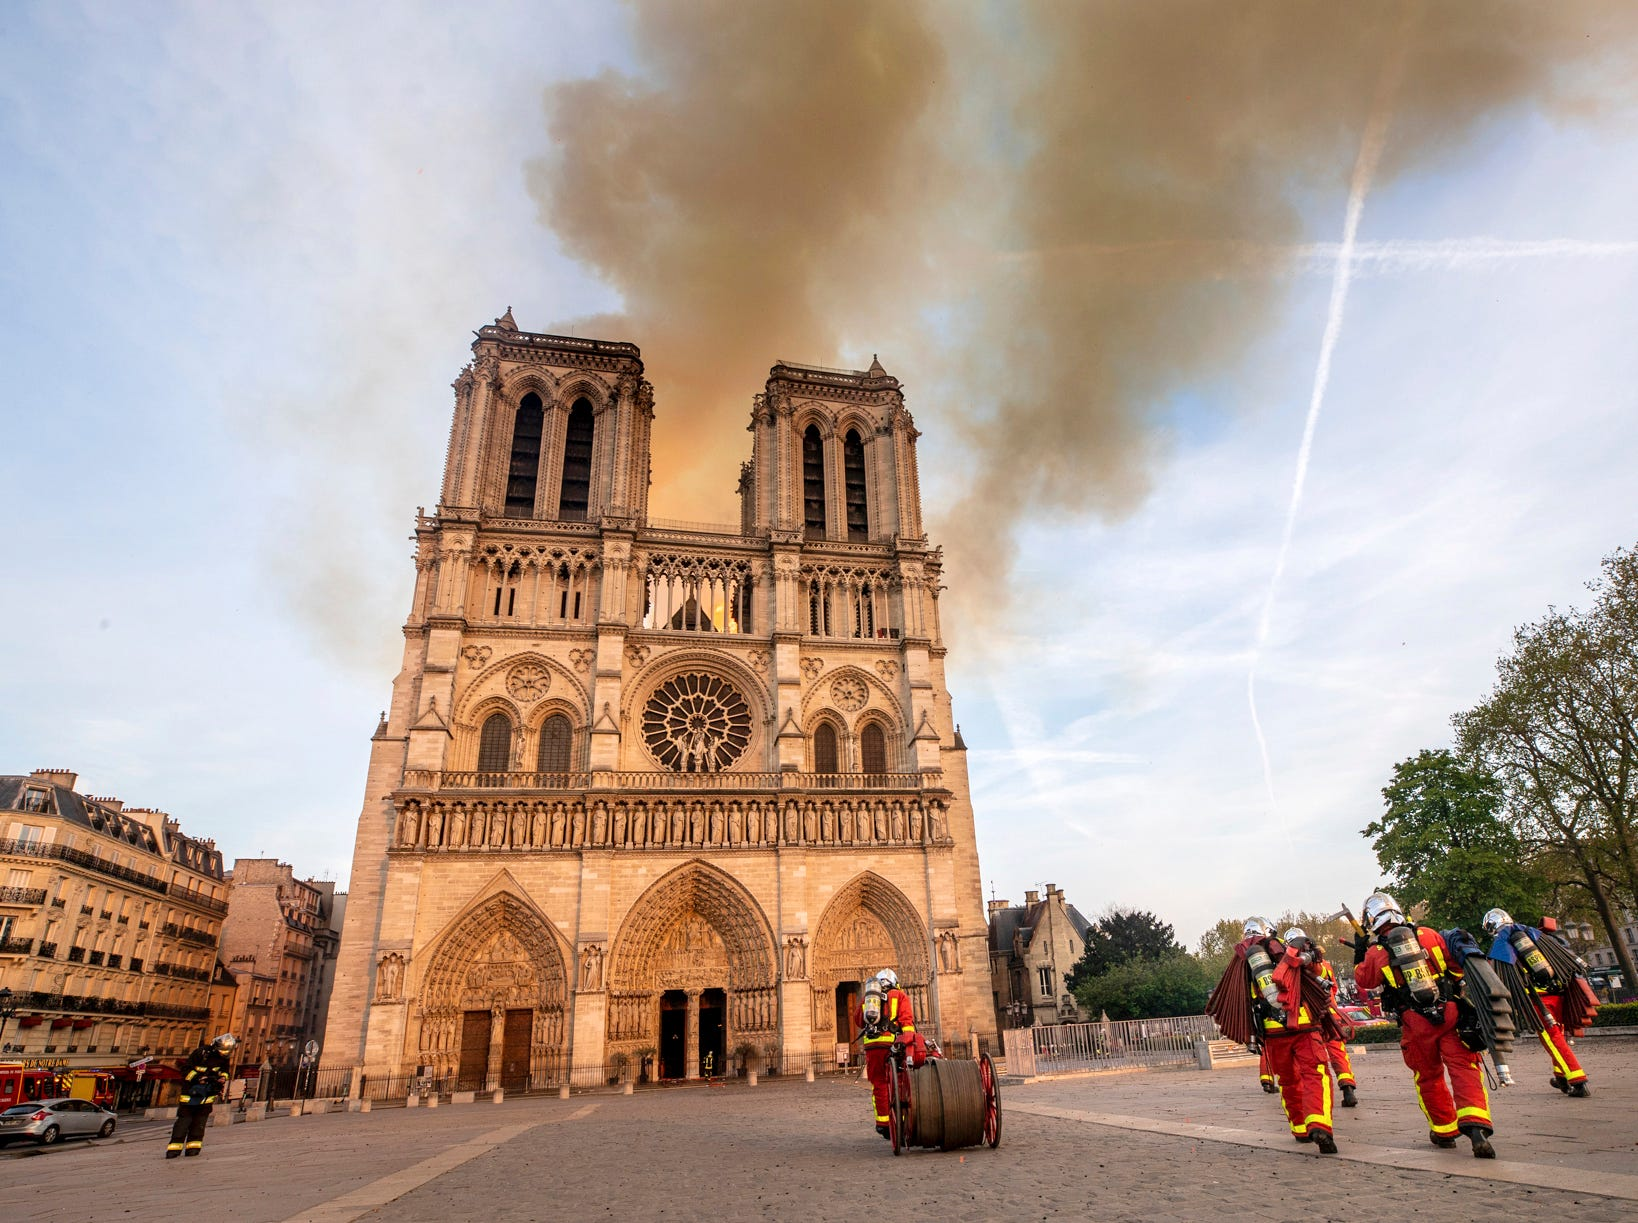 This photo provided Tuesday April 16, 2019 by the Paris Fire Brigade shows fire fighters heading to the burning Notre Dame cathedral, Monday April 15, 2019. Experts assessed the blackened shell of Paris' iconic Notre Dame Tuesday morning to establish next steps to save what remains after a devastating fire destroyed much of the cathedral that had survived almost 900 years of history. (Benoit Moser/BSPP via AP)